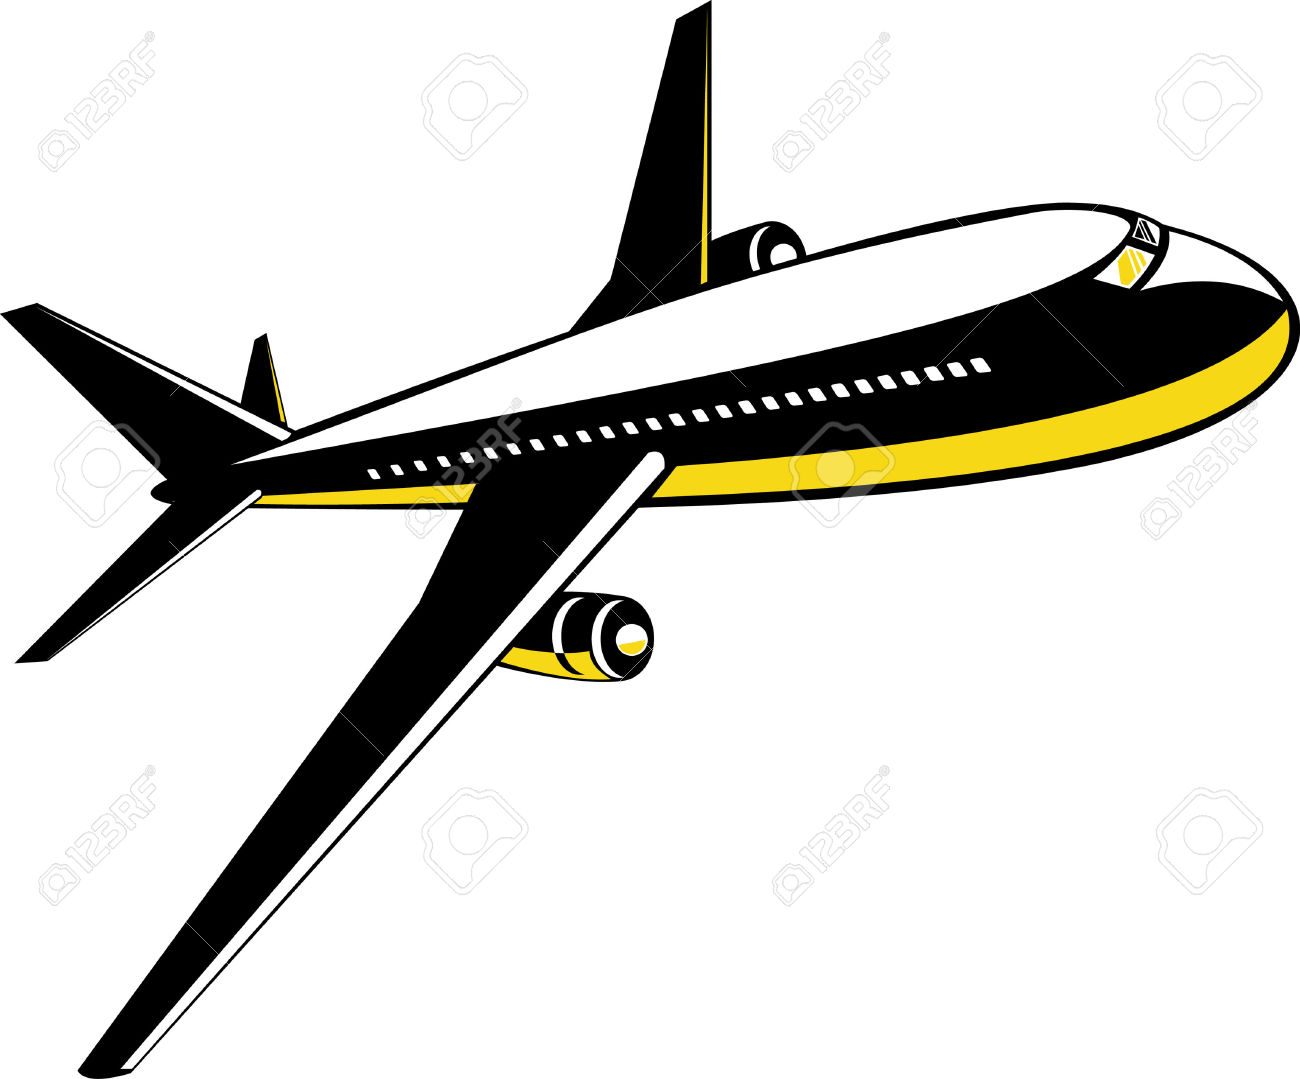 Supersonic jet plane clipart.